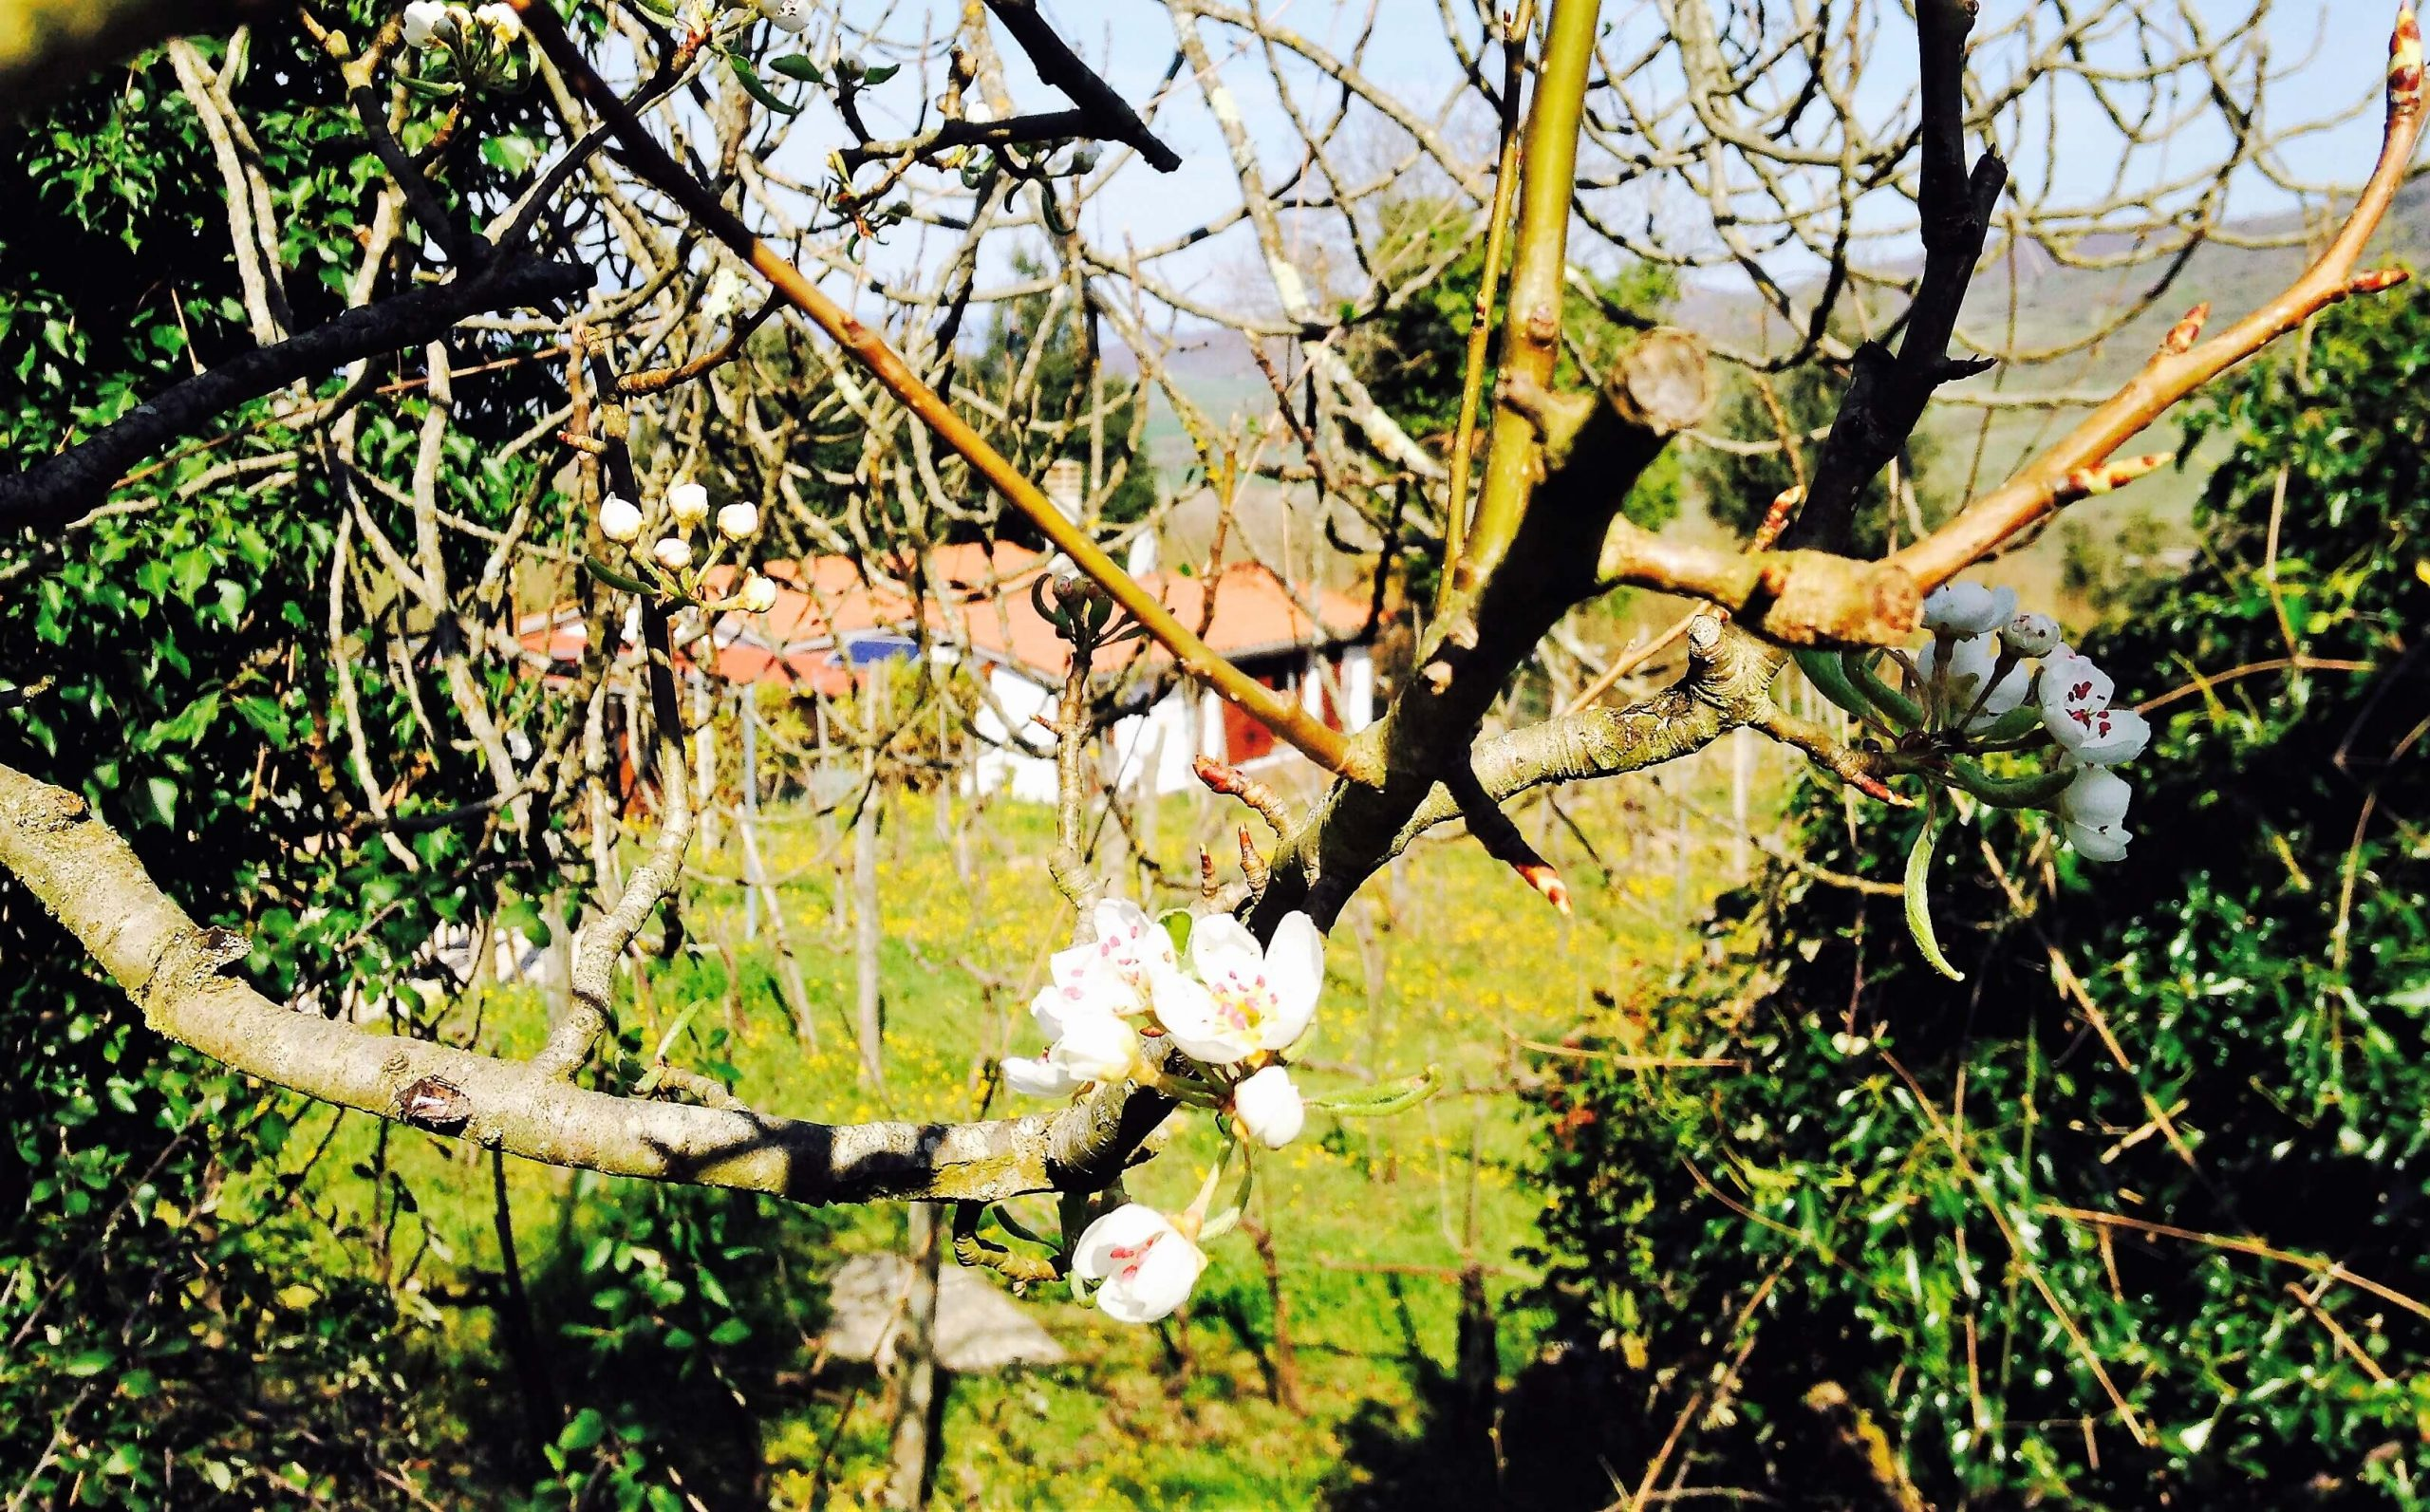 While we are waiting for spring in the vineyard – a video from February